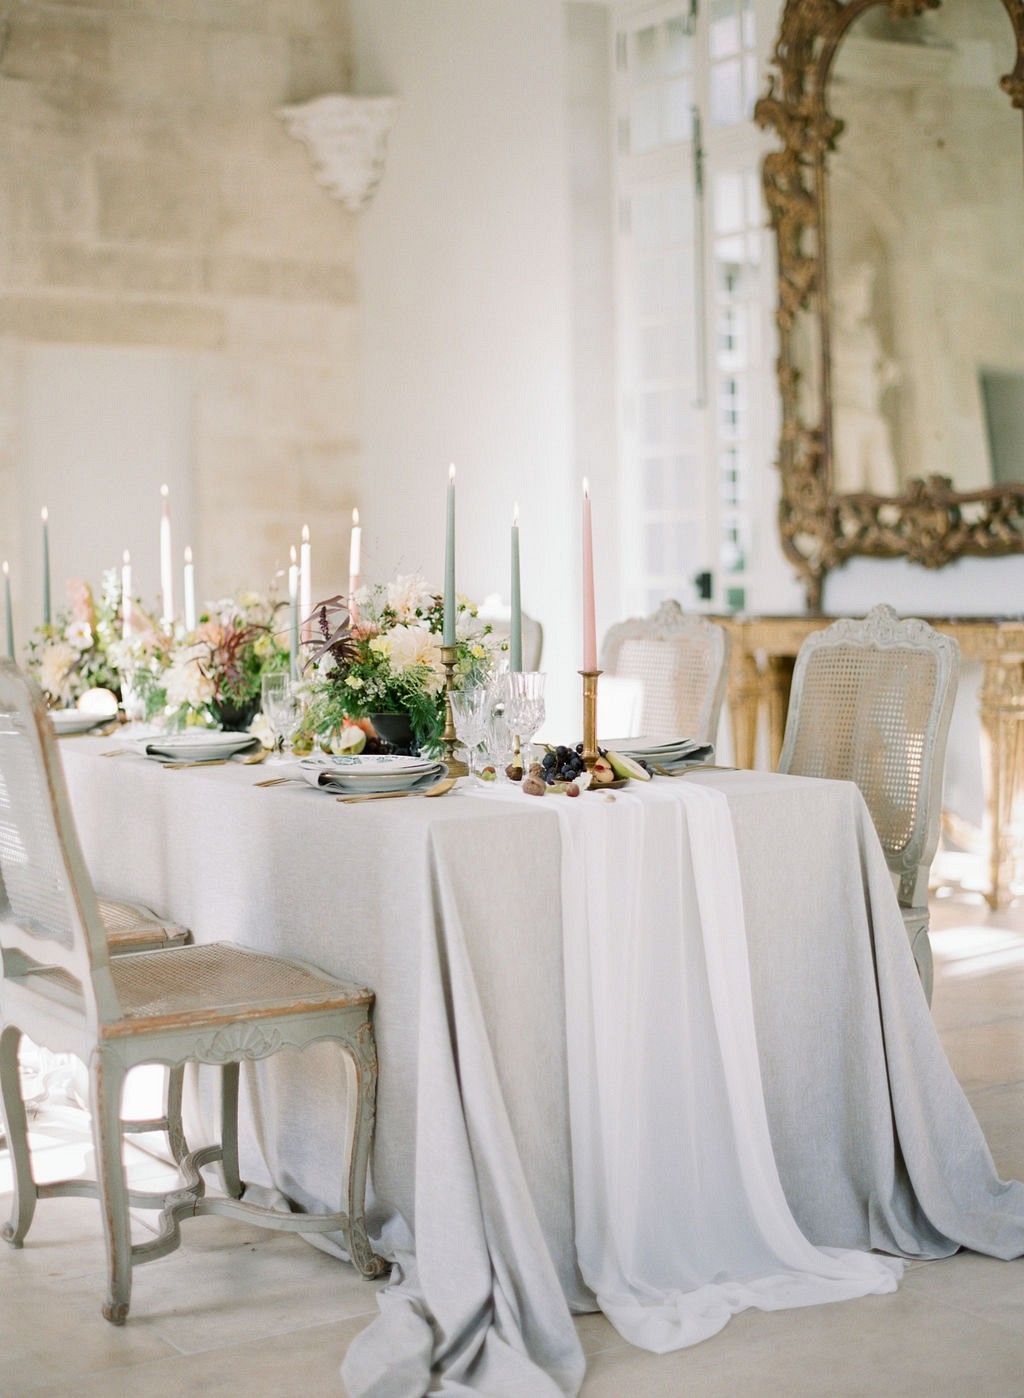 A Baroque Inspired Wedding Editorial based on a French painting